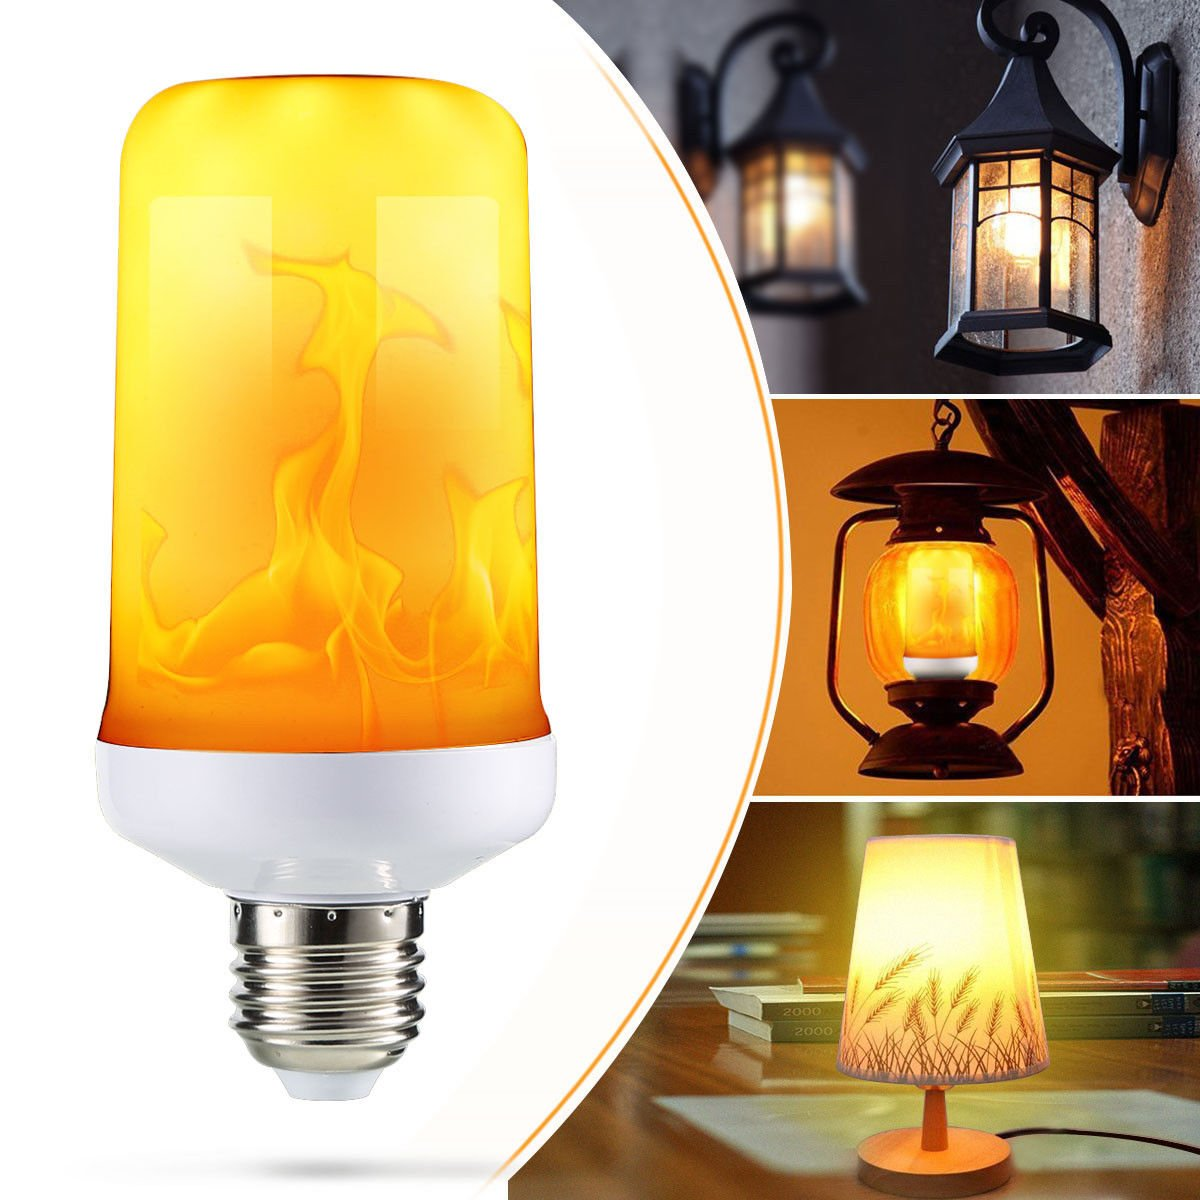 4 Modes with gravity sensor LED Flame Effect Simulated Nature Fire Light Bulb E27 9W Lampss